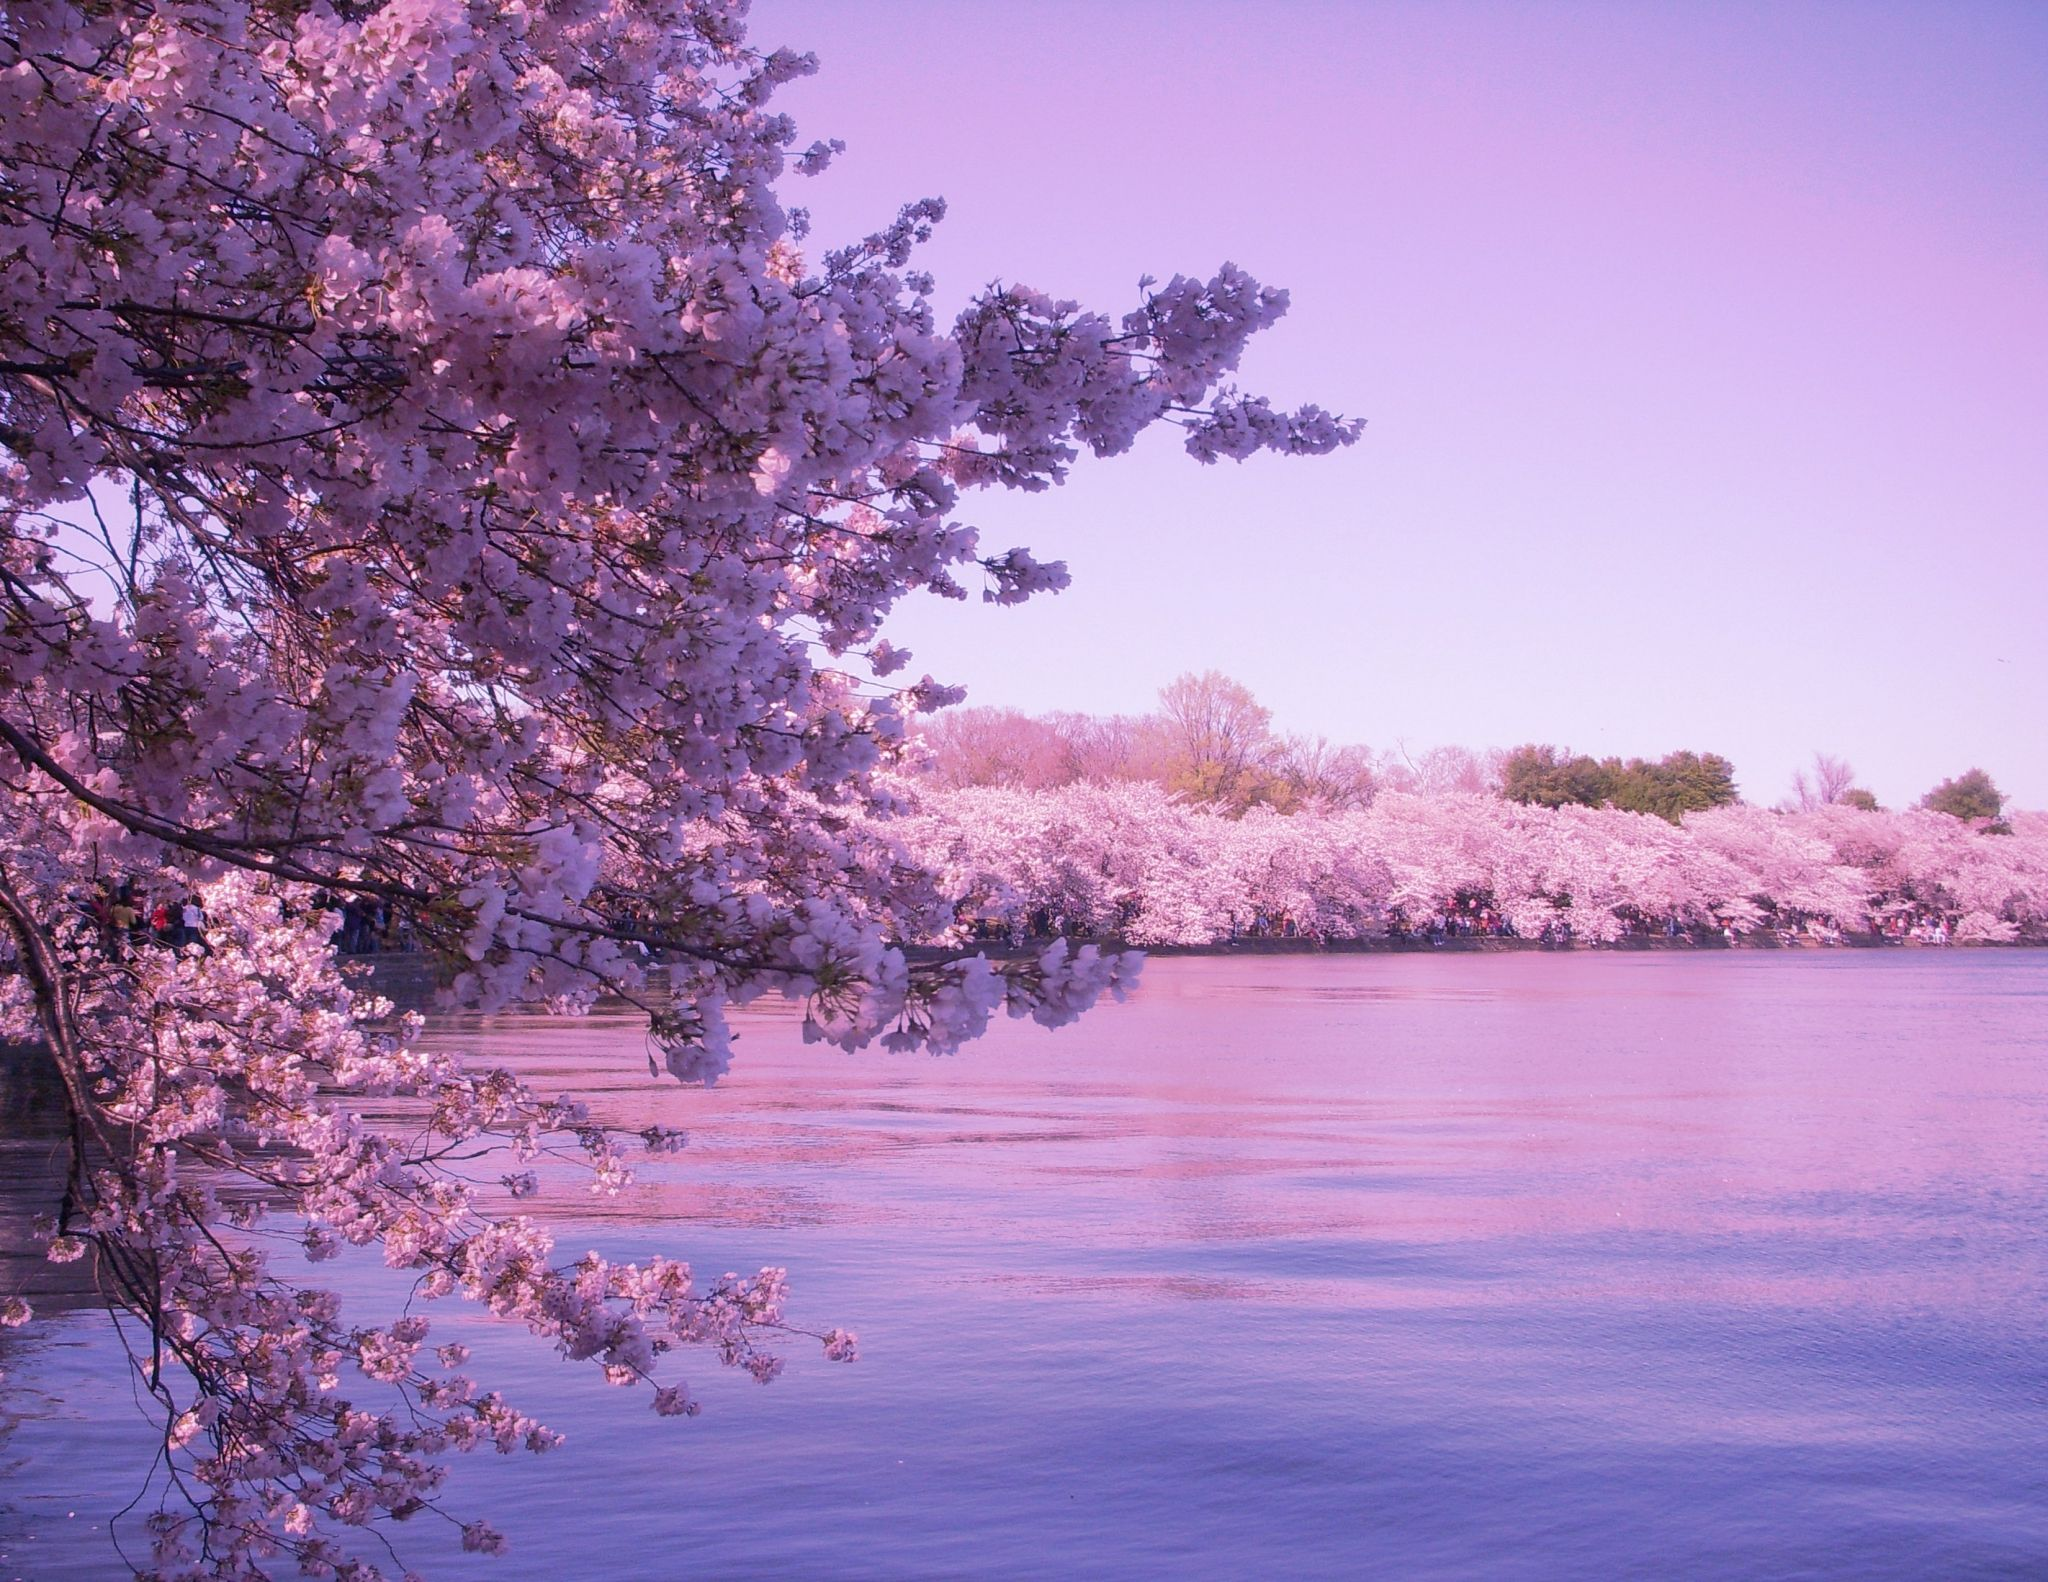 Cherry Blossom Desktop Wallpapers Wallpaper Пейзажи